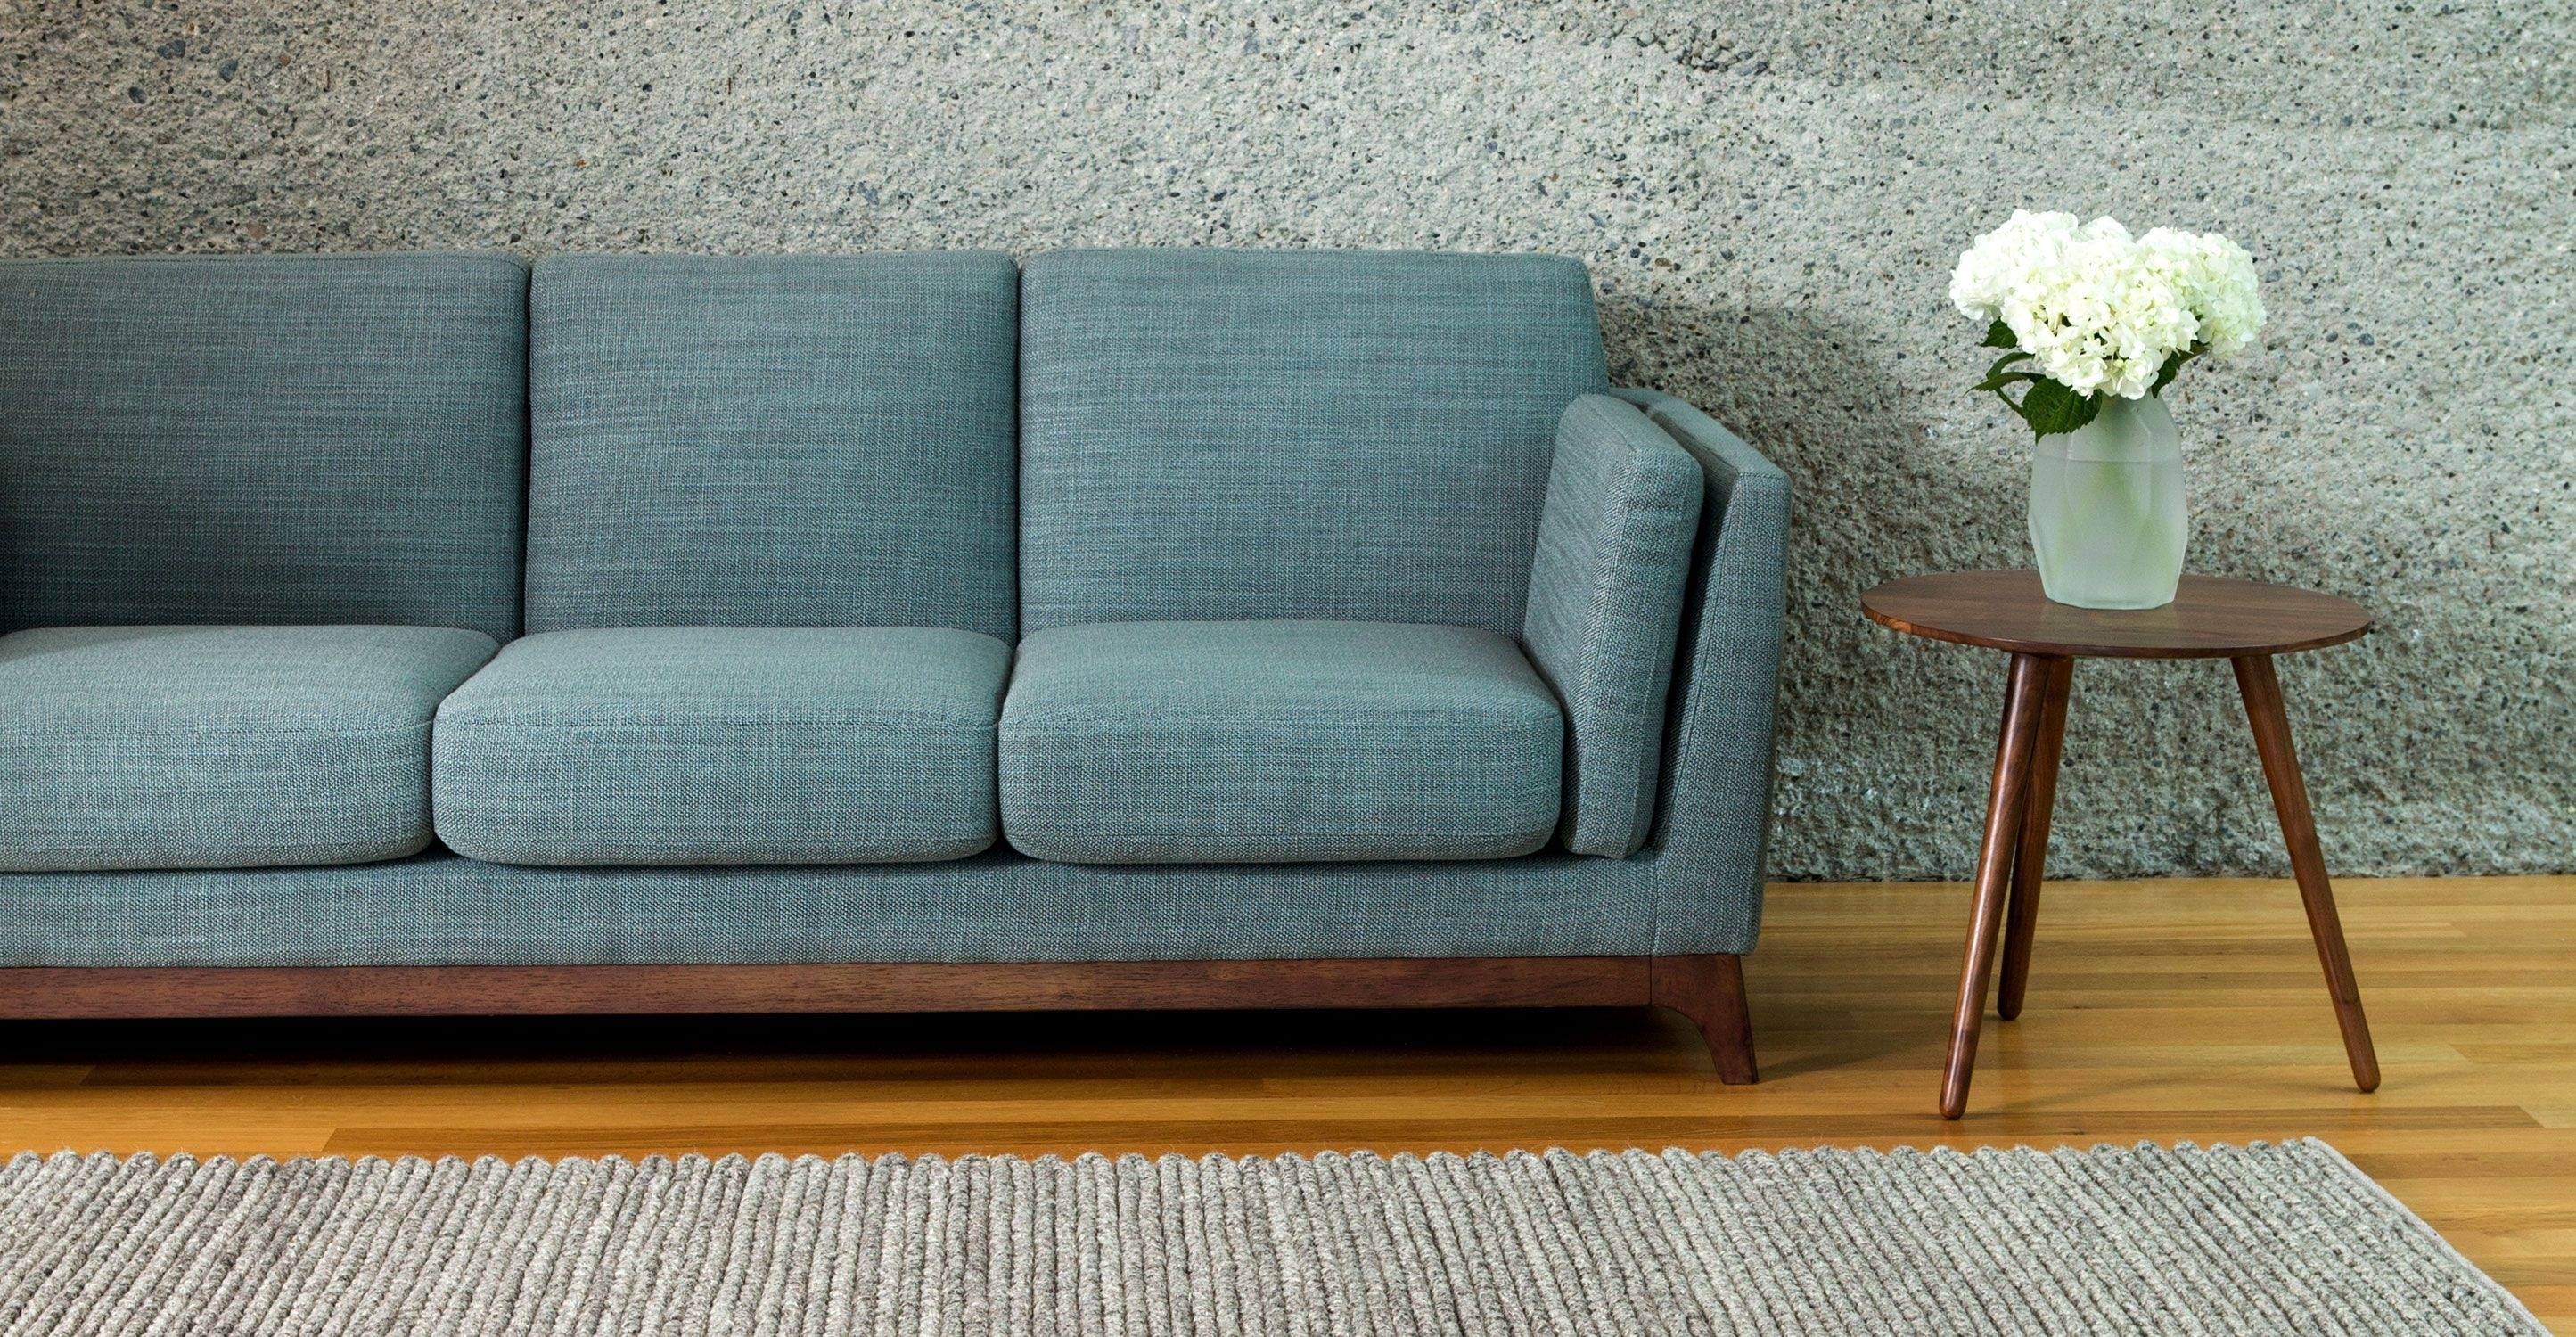 Blue Sofa 3 Seater With Solid Wood Legs | Article Ceni Modern Within Aqua Sofas (View 9 of 10)